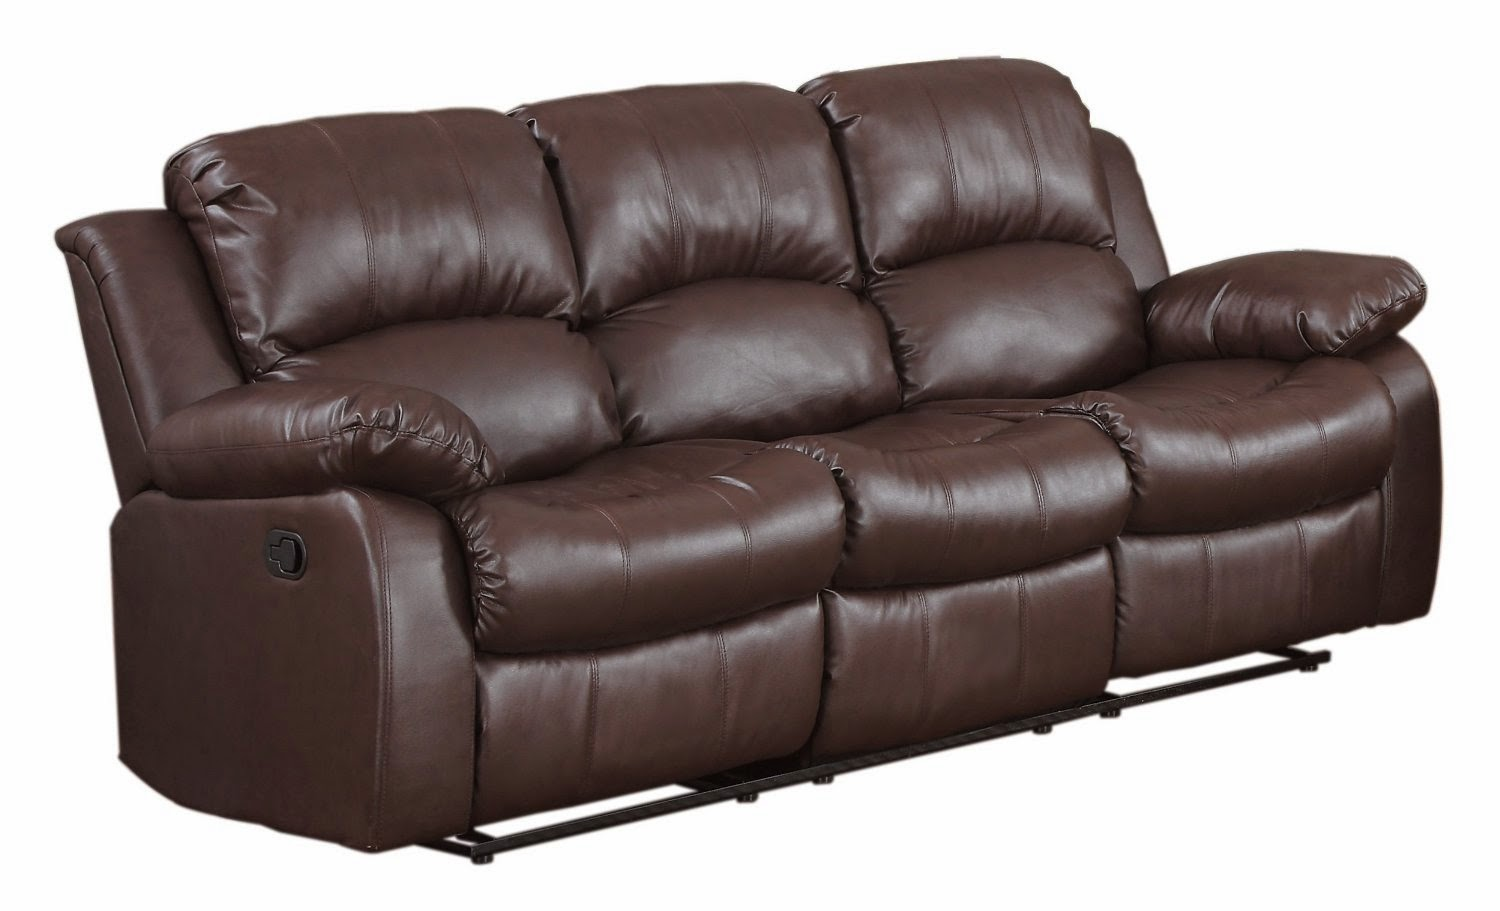 discounted leather sofas sofa chaise long com cama the best reclining ratings reviews cheap faux